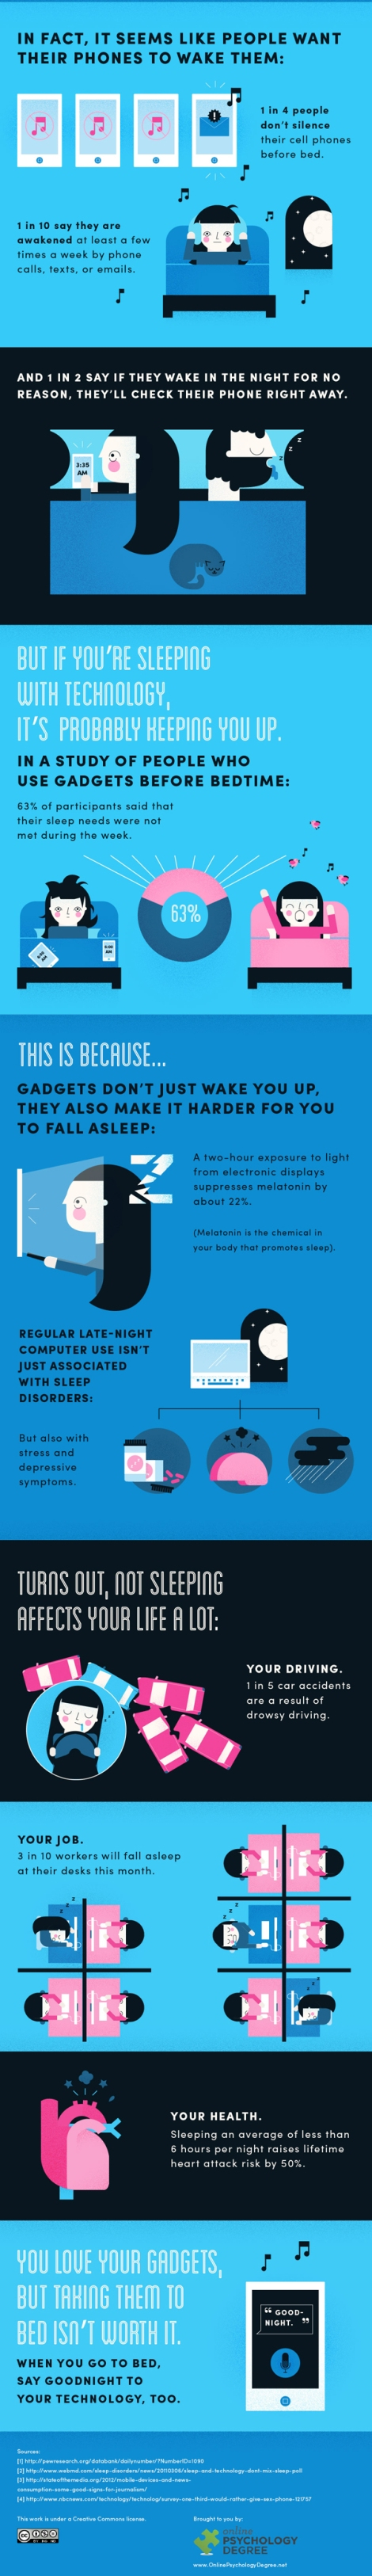 Your technology is keeping you awake